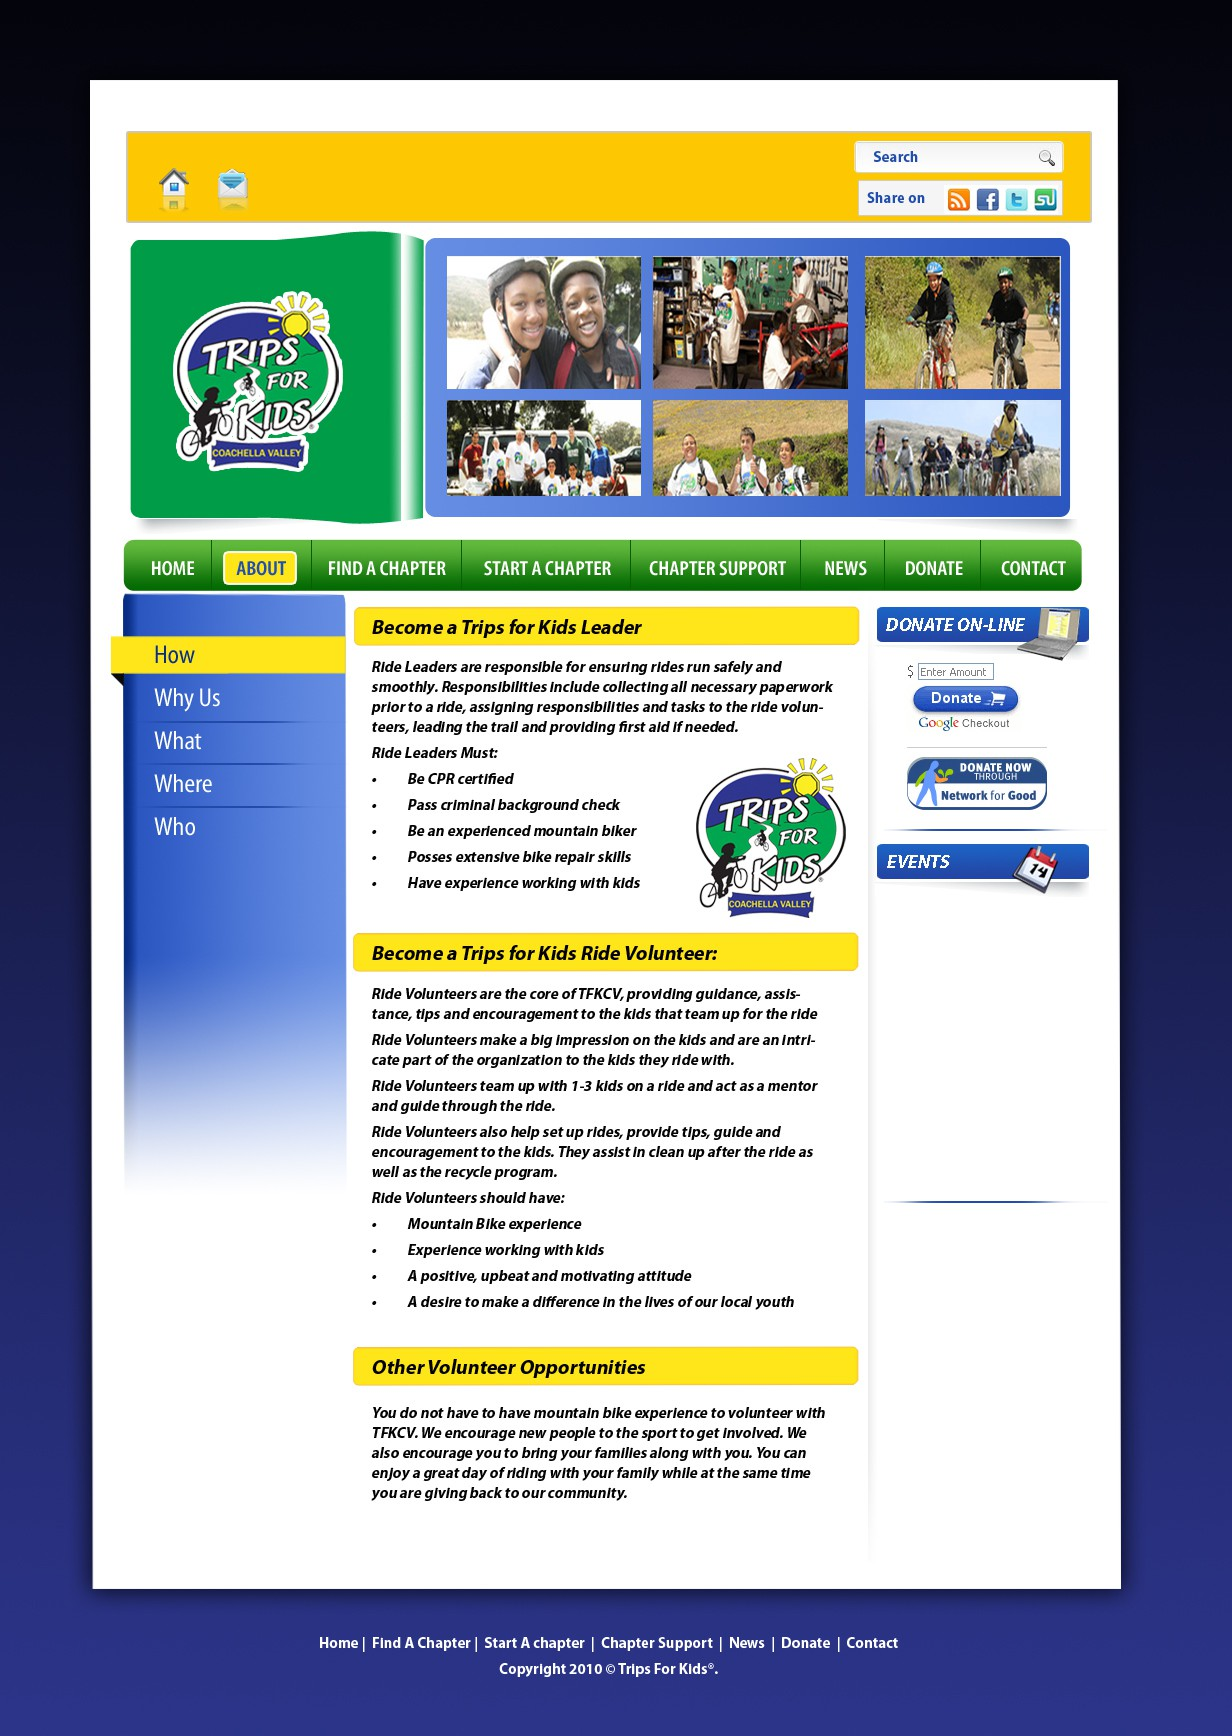 Web Page Design by create-own